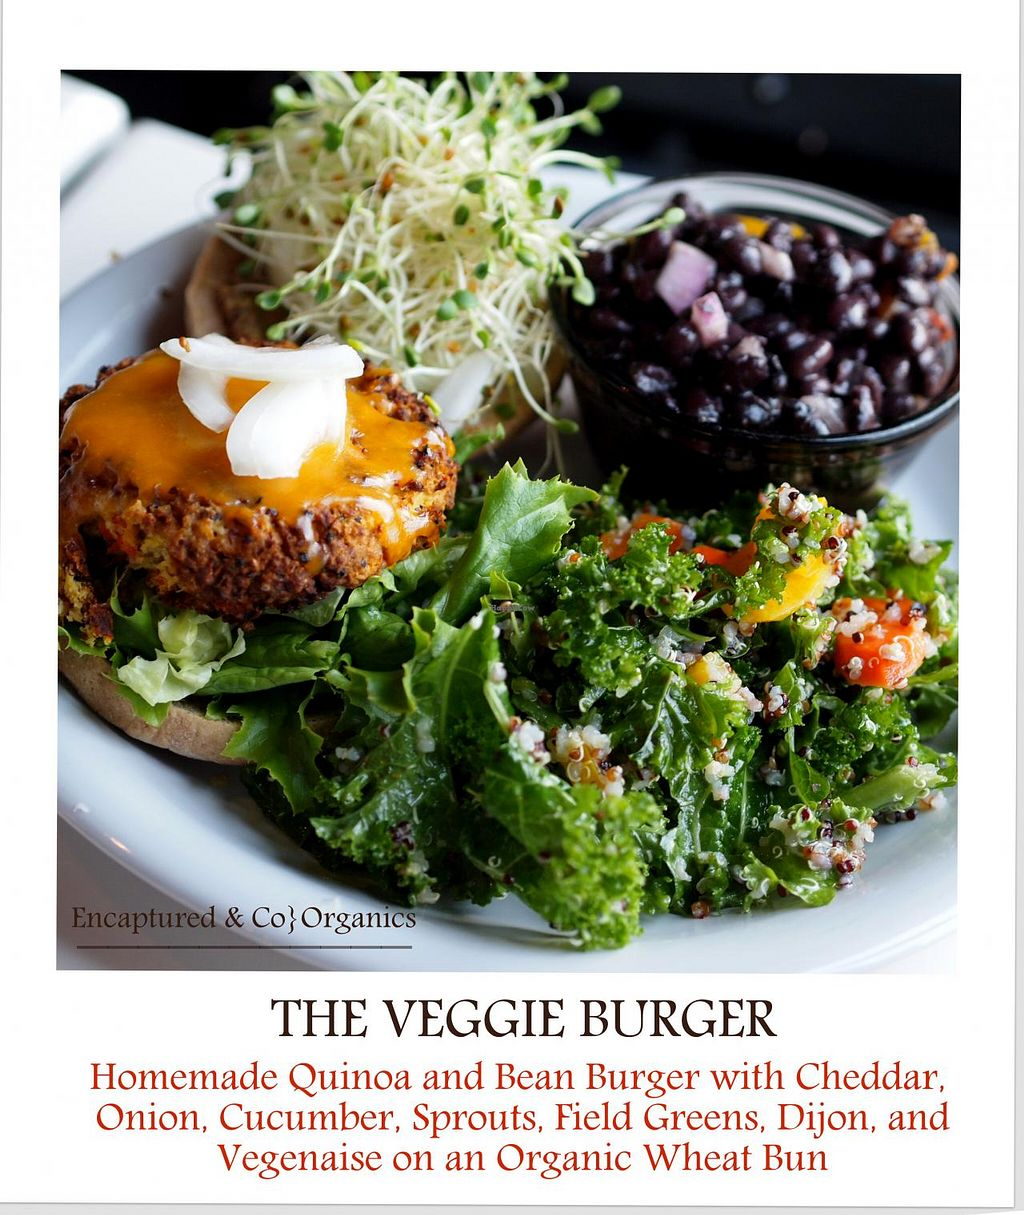 """Photo of Sprouts Cafe  by <a href=""""/members/profile/TammyCantrell"""">TammyCantrell</a> <br/>Sprouts Veggie Burger!  <br/> May 23, 2014  - <a href='/contact/abuse/image/41561/70556'>Report</a>"""